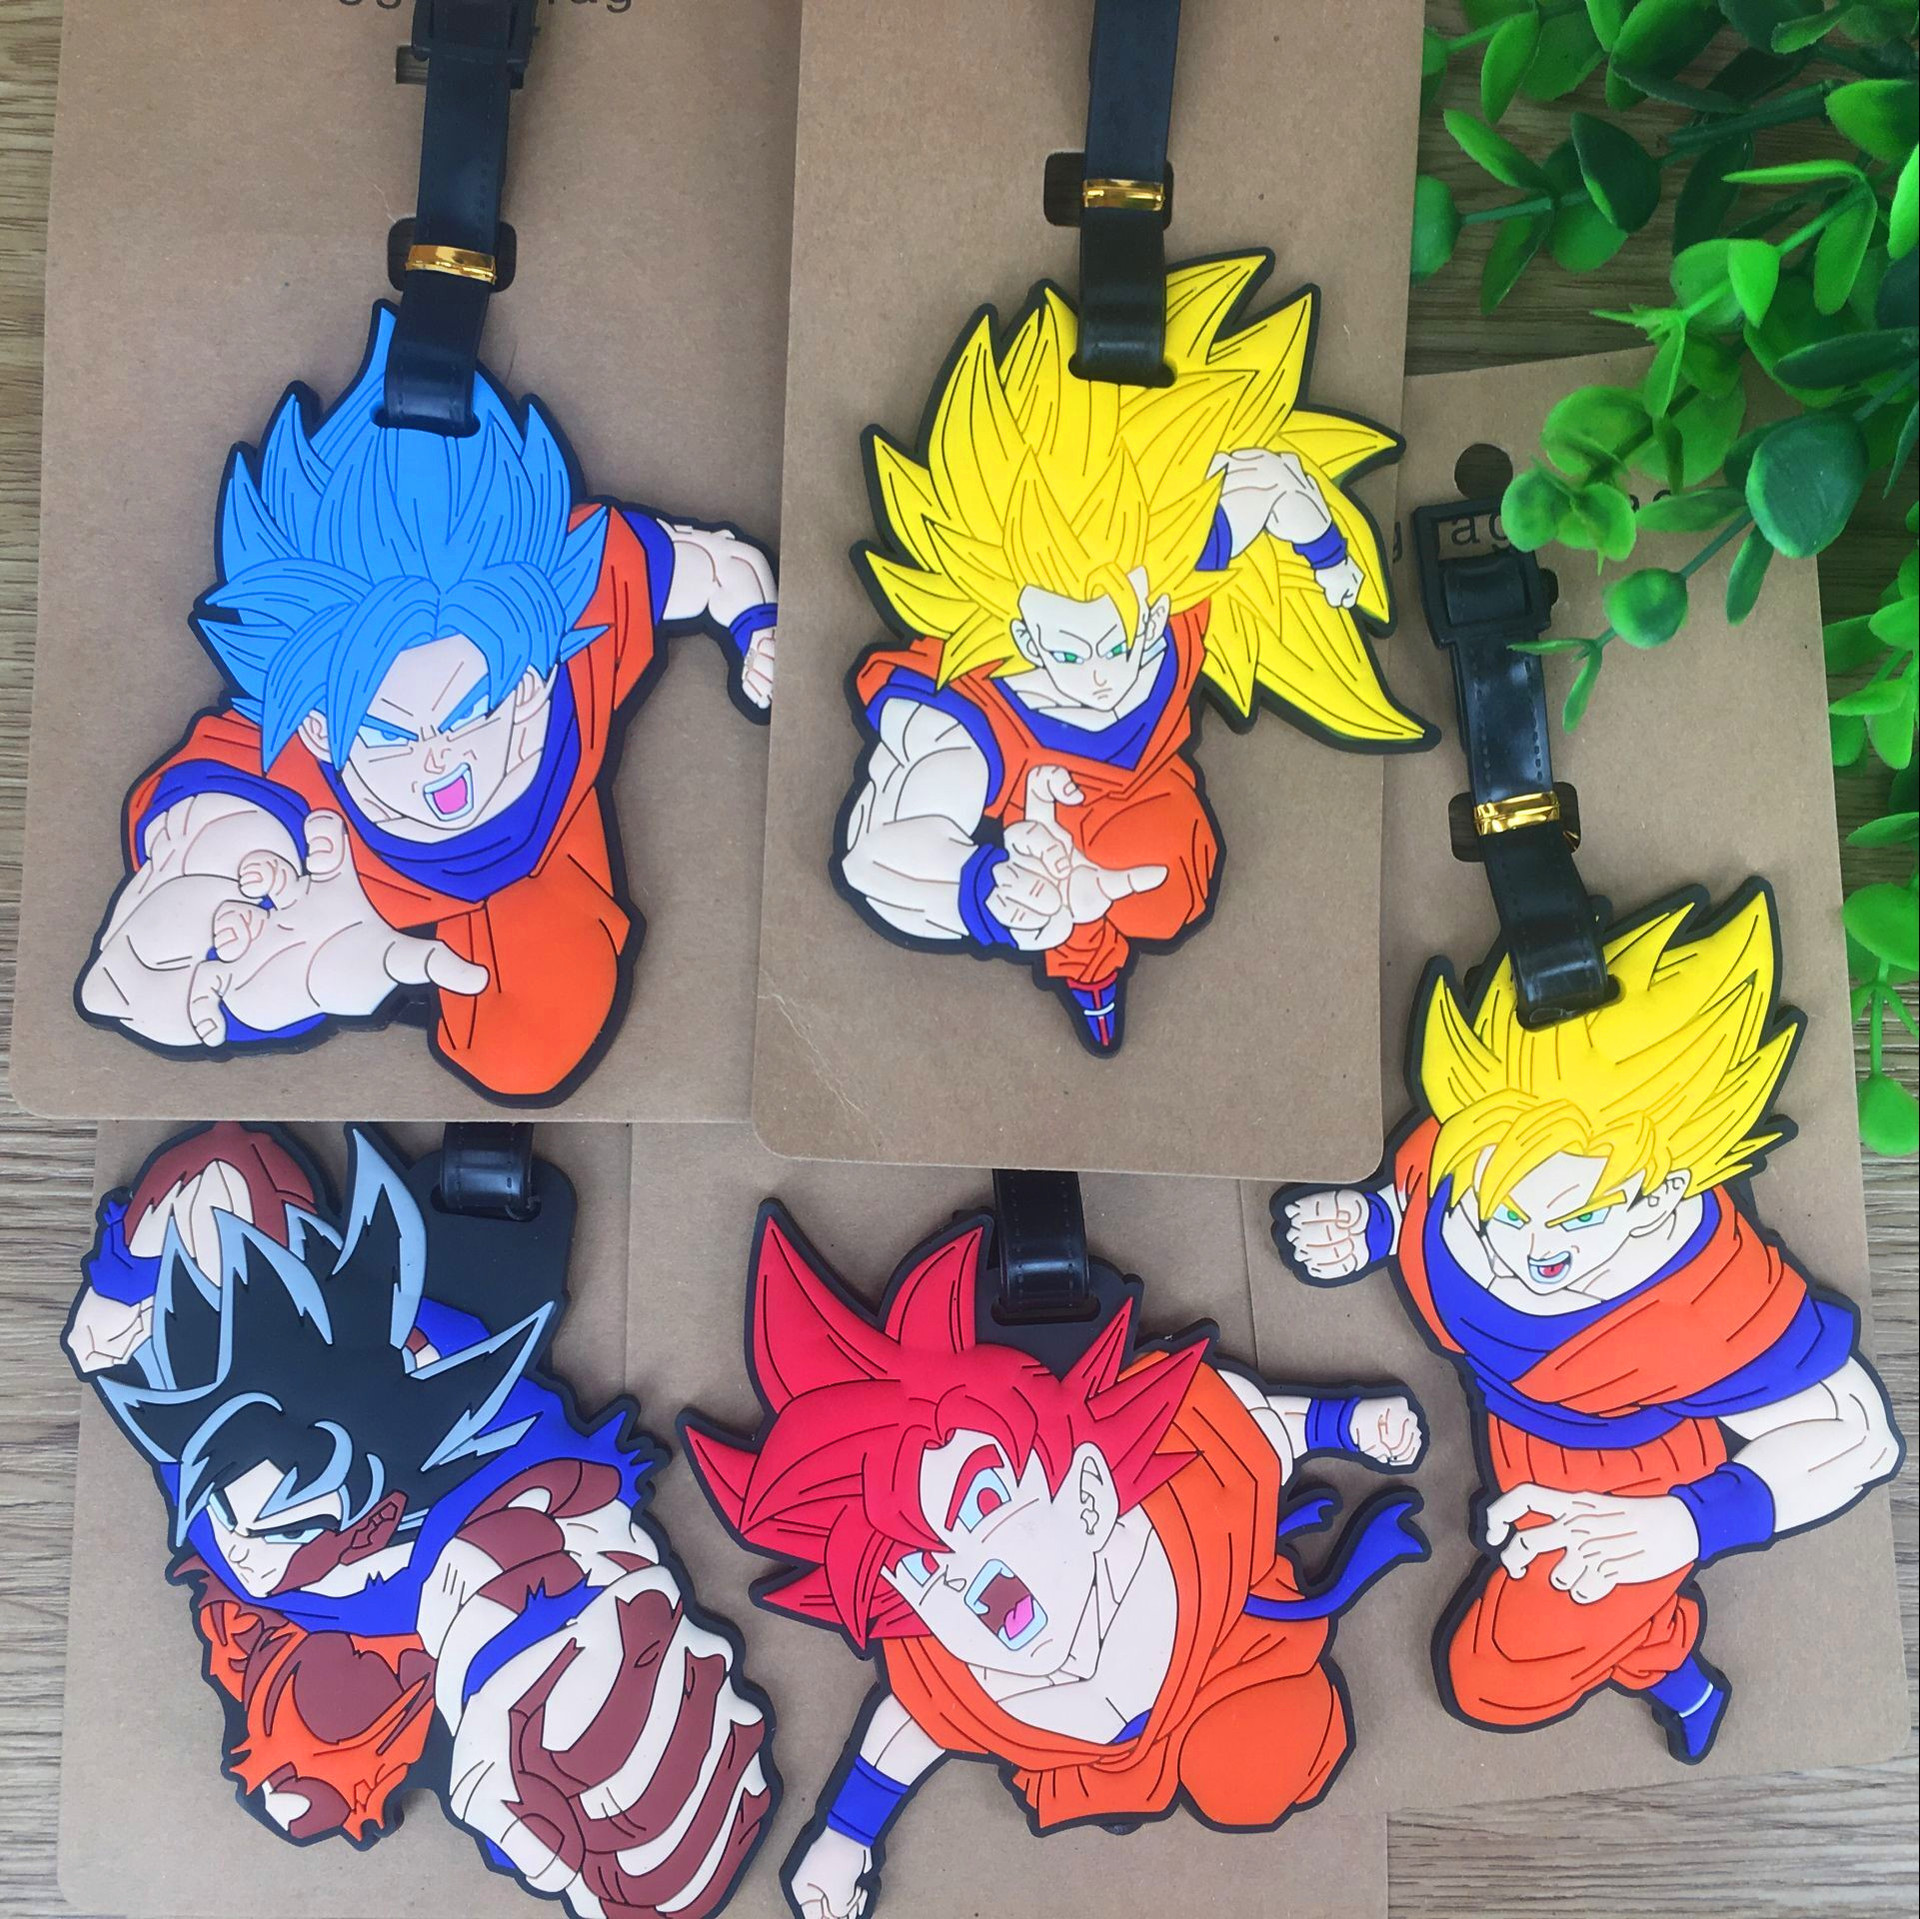 To The Japanese Cartoon Dragonball Wukong Modelling Luggage Tag Identify Hang Act The Role Of Soft PVC Plastic Bagsne